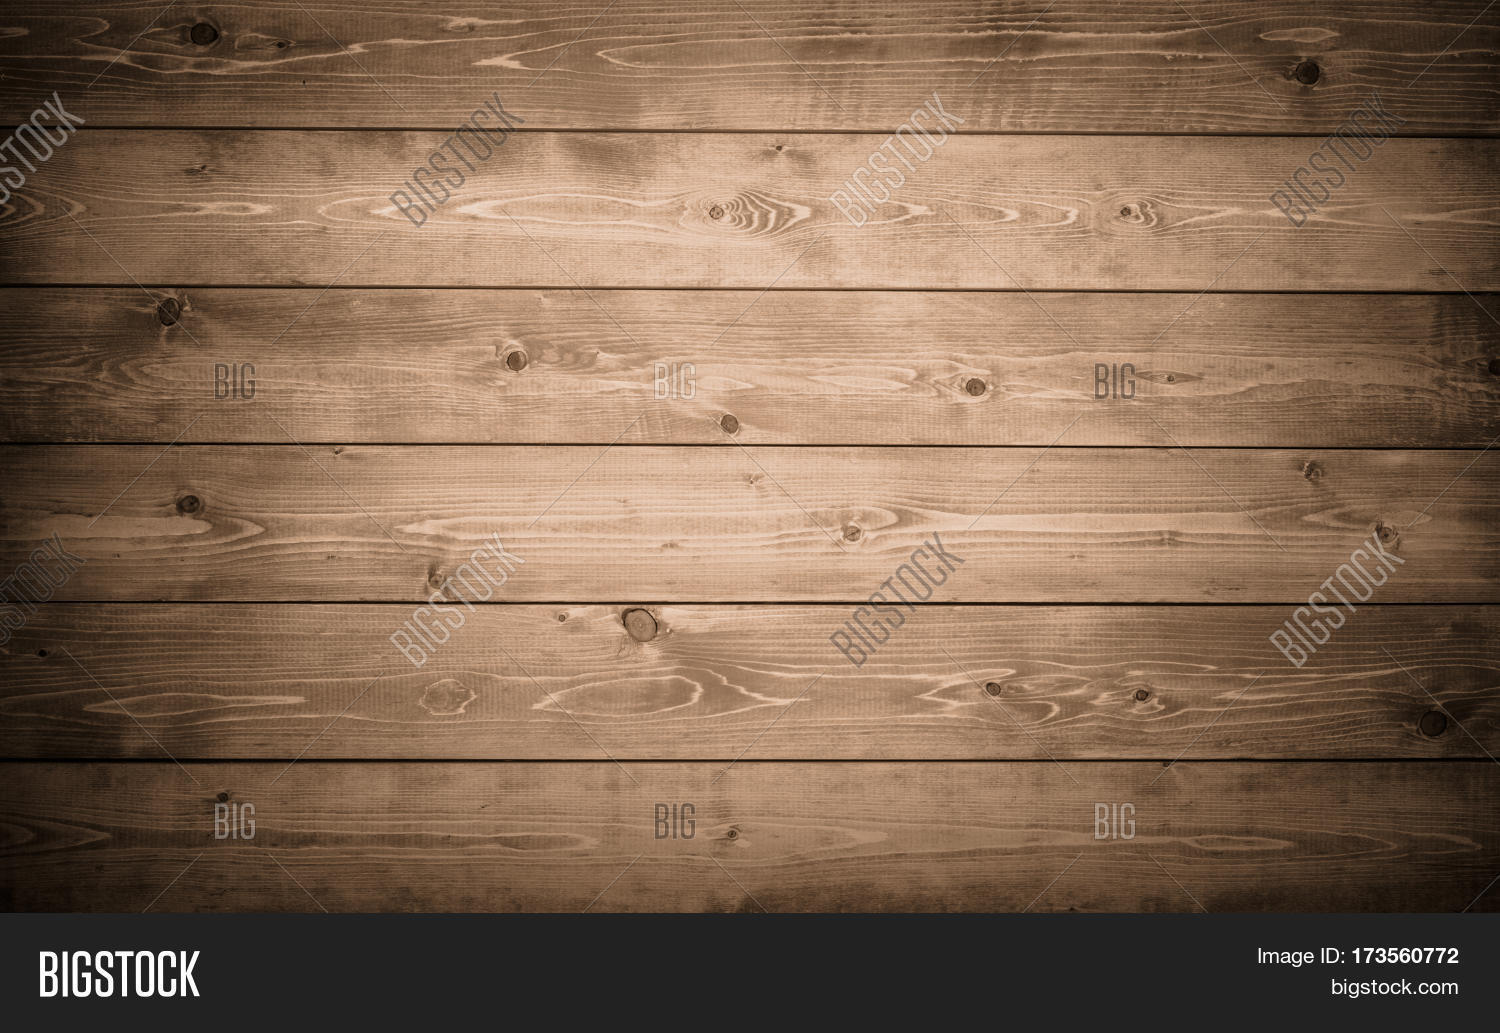 Wooden Table Surface ~ Wood table surface top view image photo bigstock